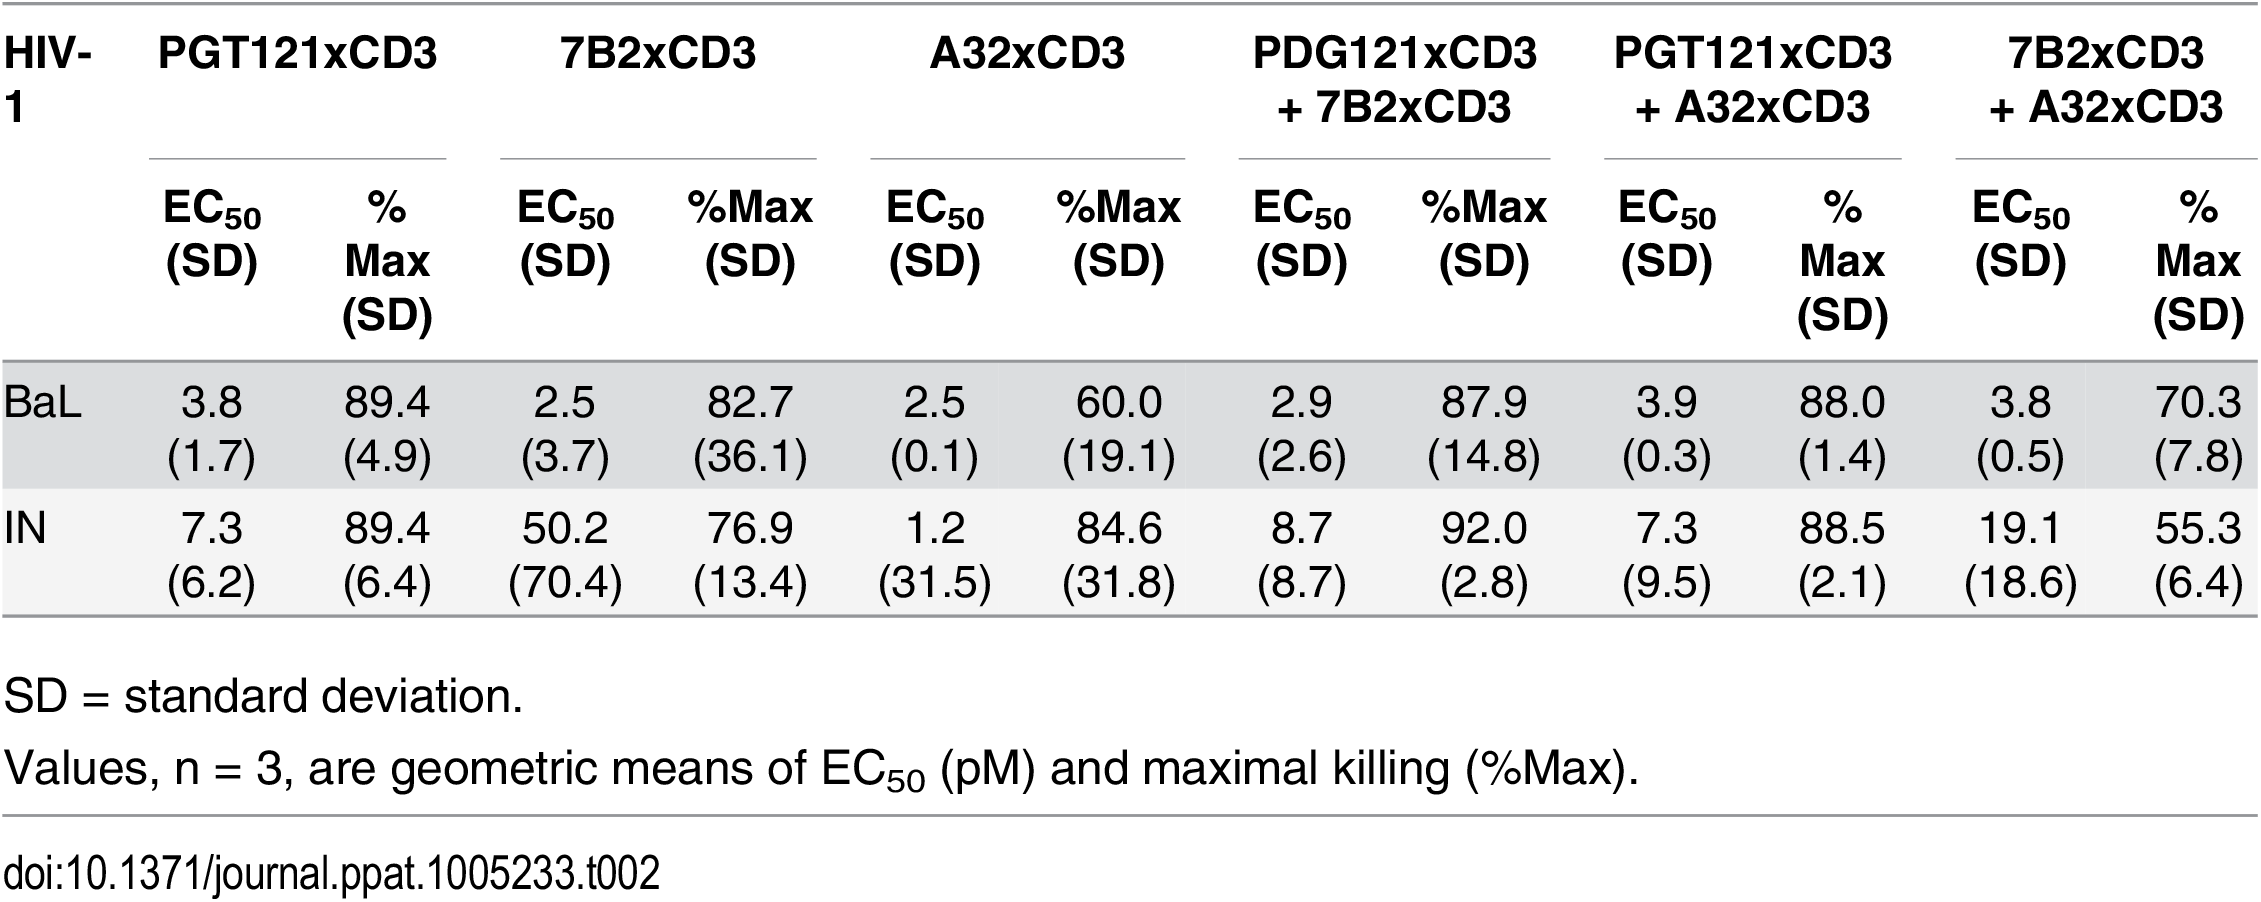 Summary of HIVxCD3 DART combination-mediated killing of HIV-1 infected CD4 T cells in vitro.